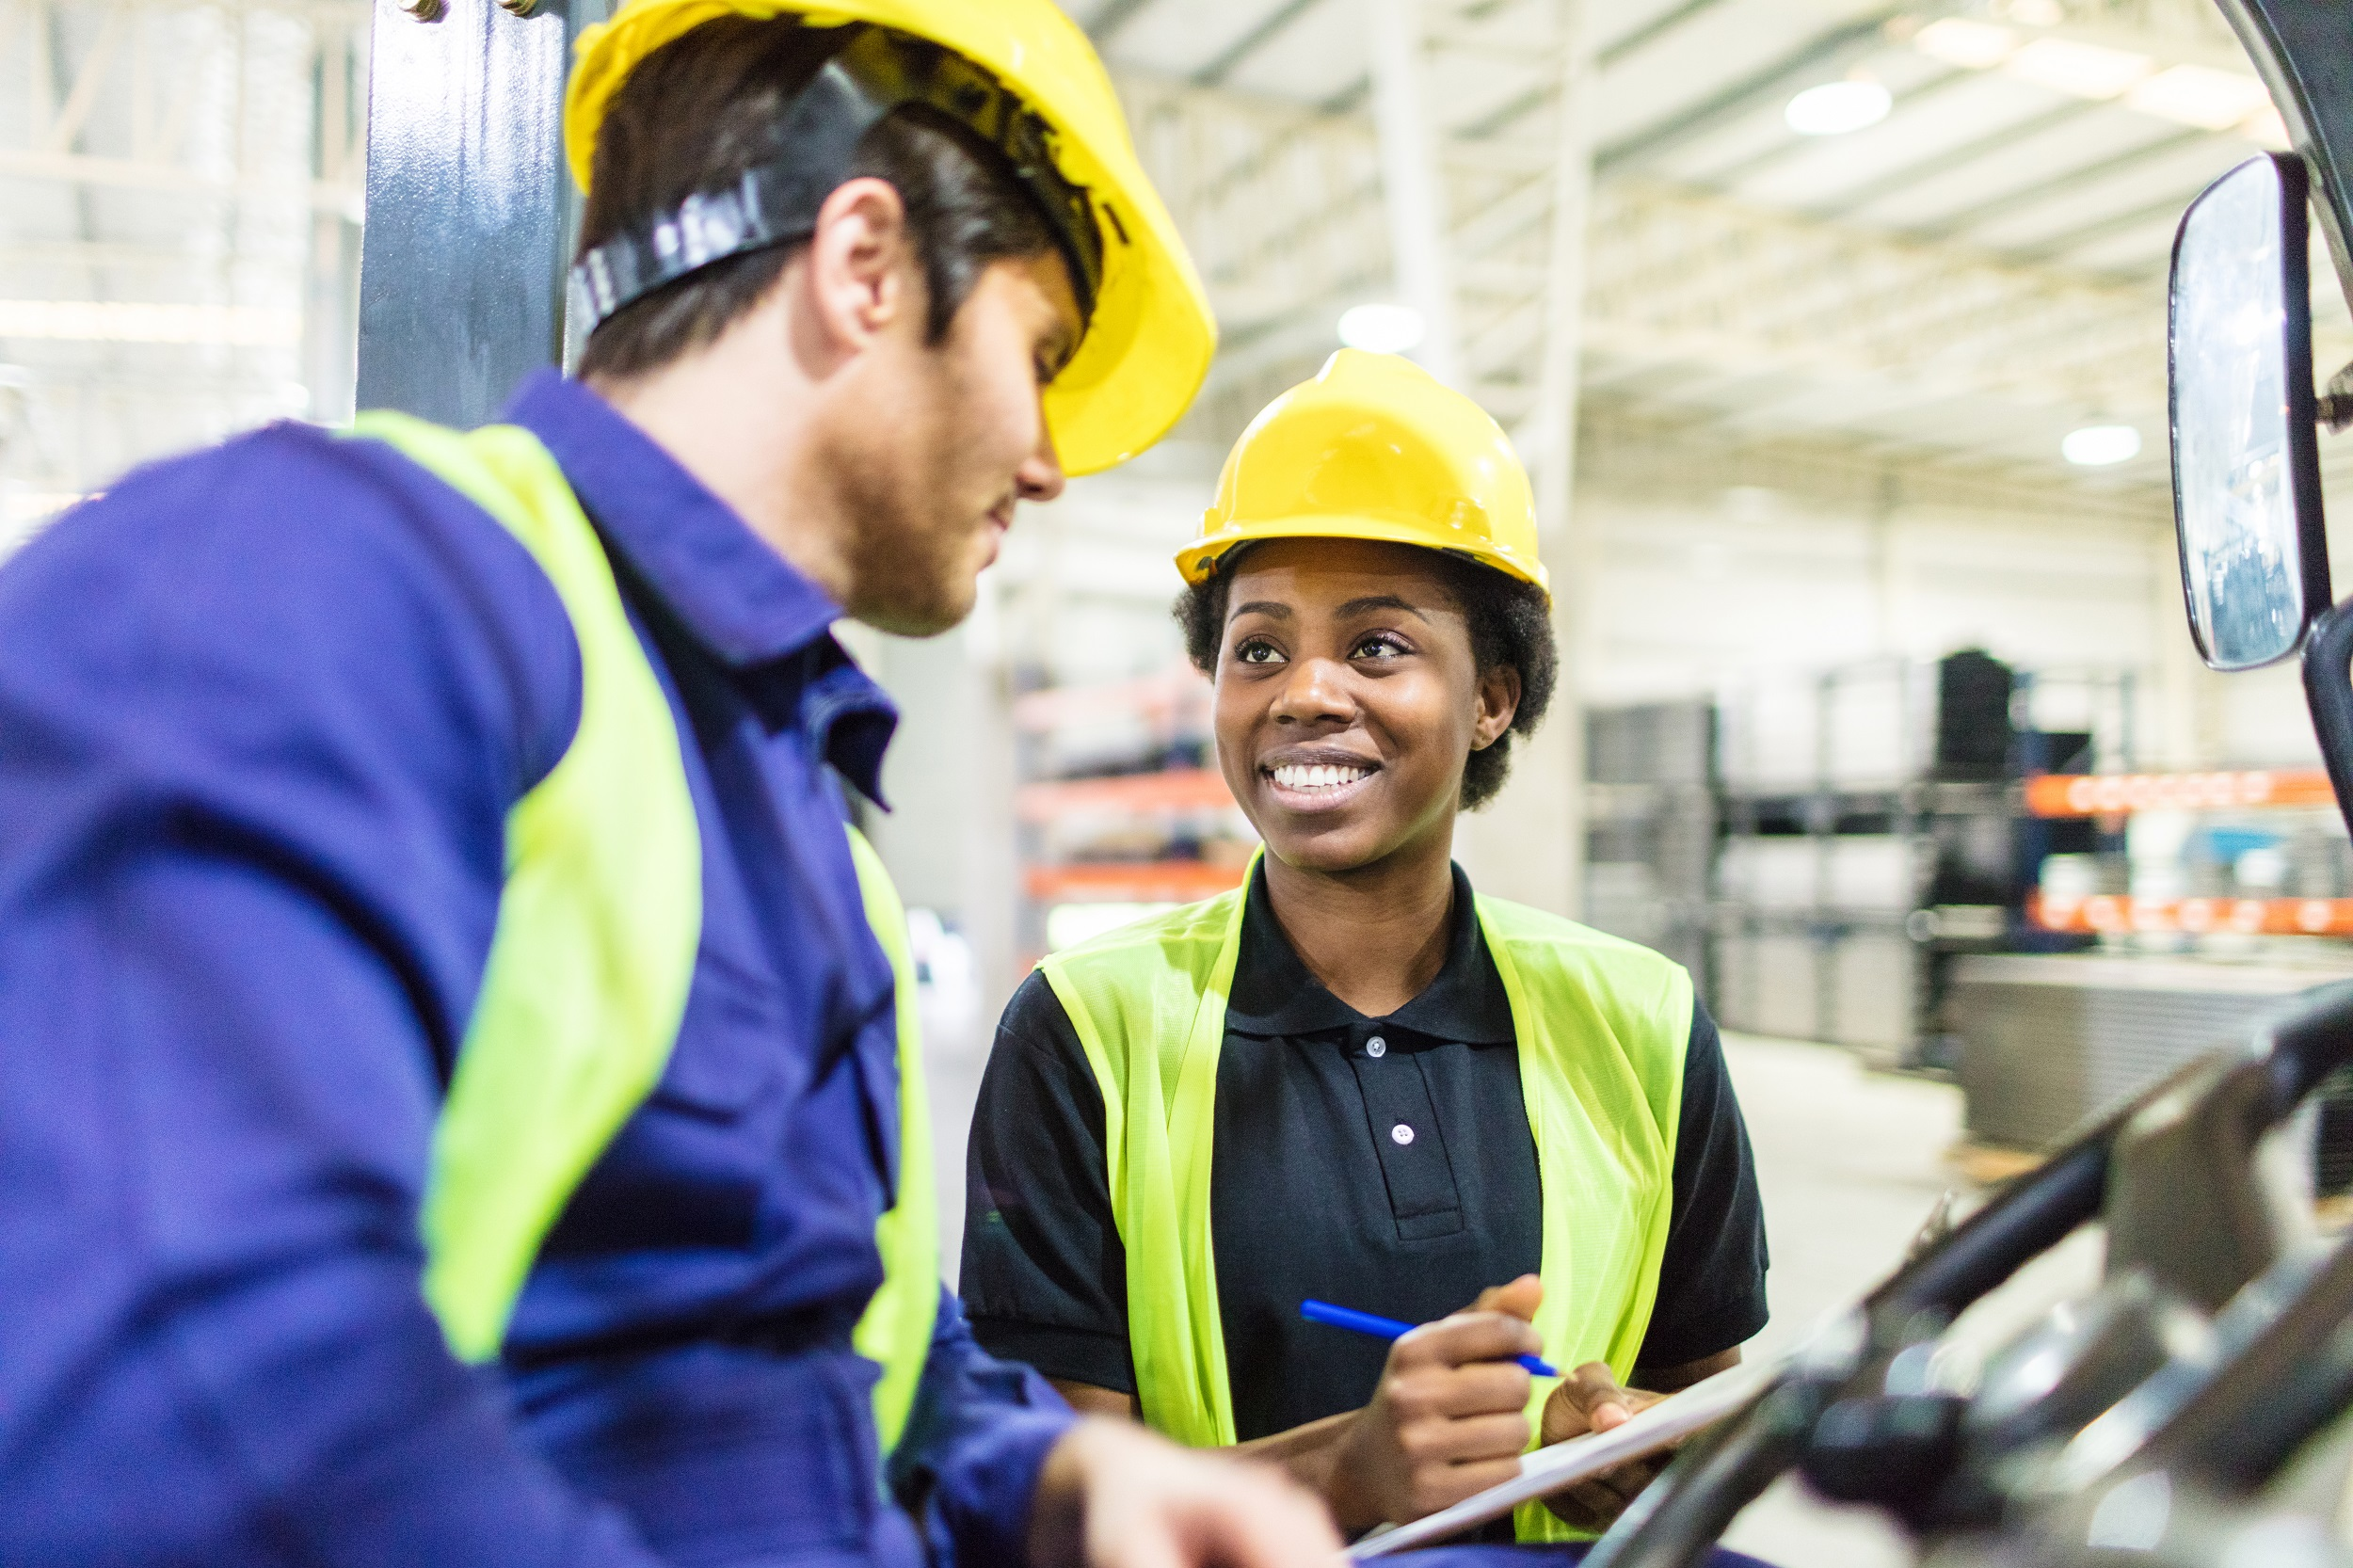 revitalizing wage growth policies to get american workers a raise